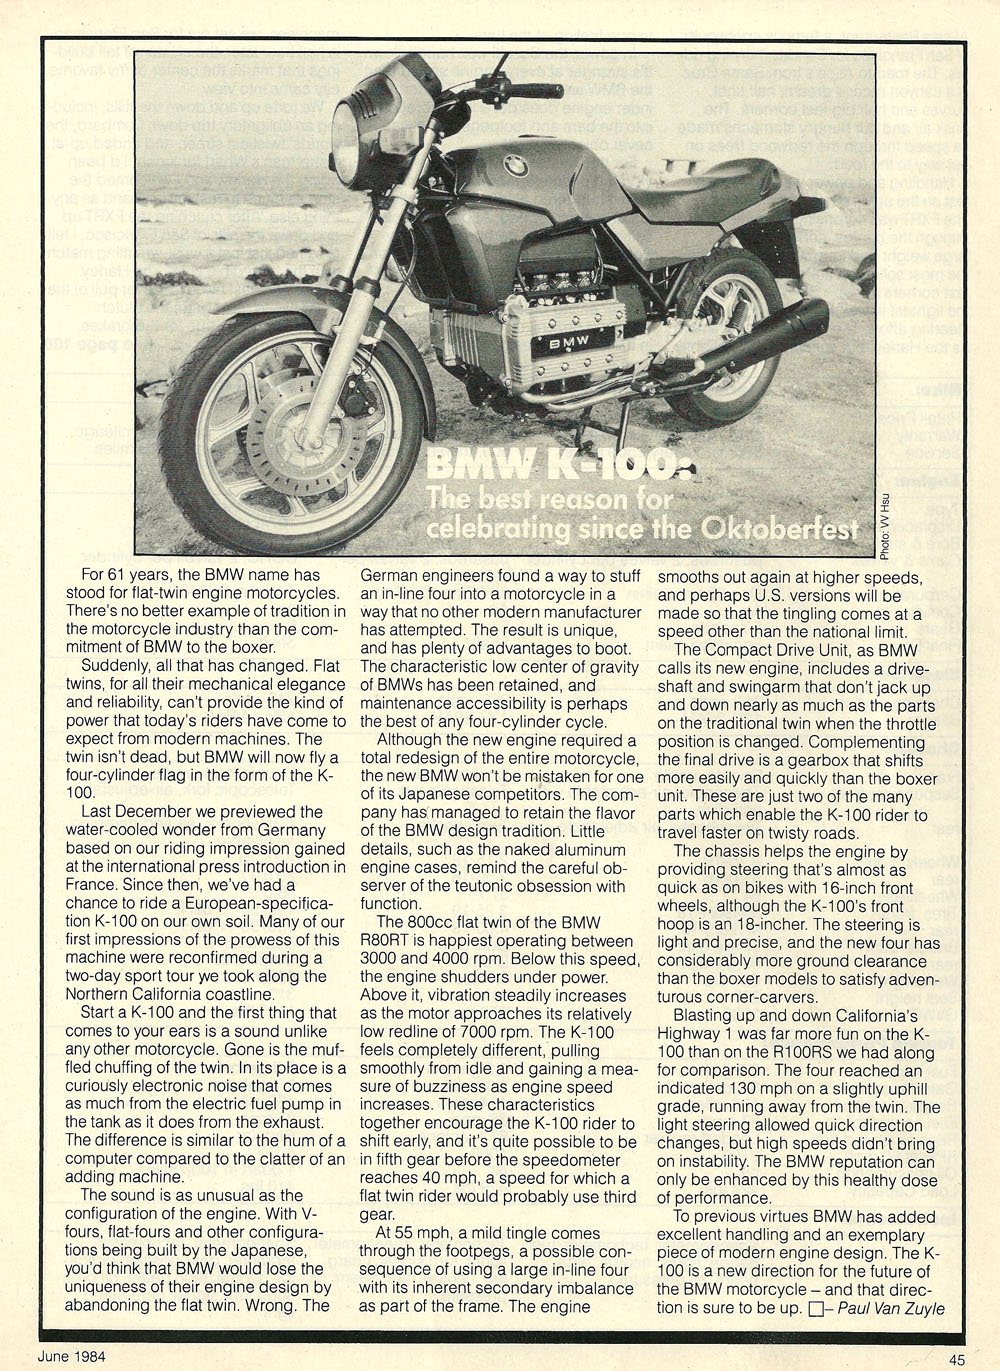 1984 bmw r80rt vs harley fxrt vs suzuki gs1100 road test 04.jpg